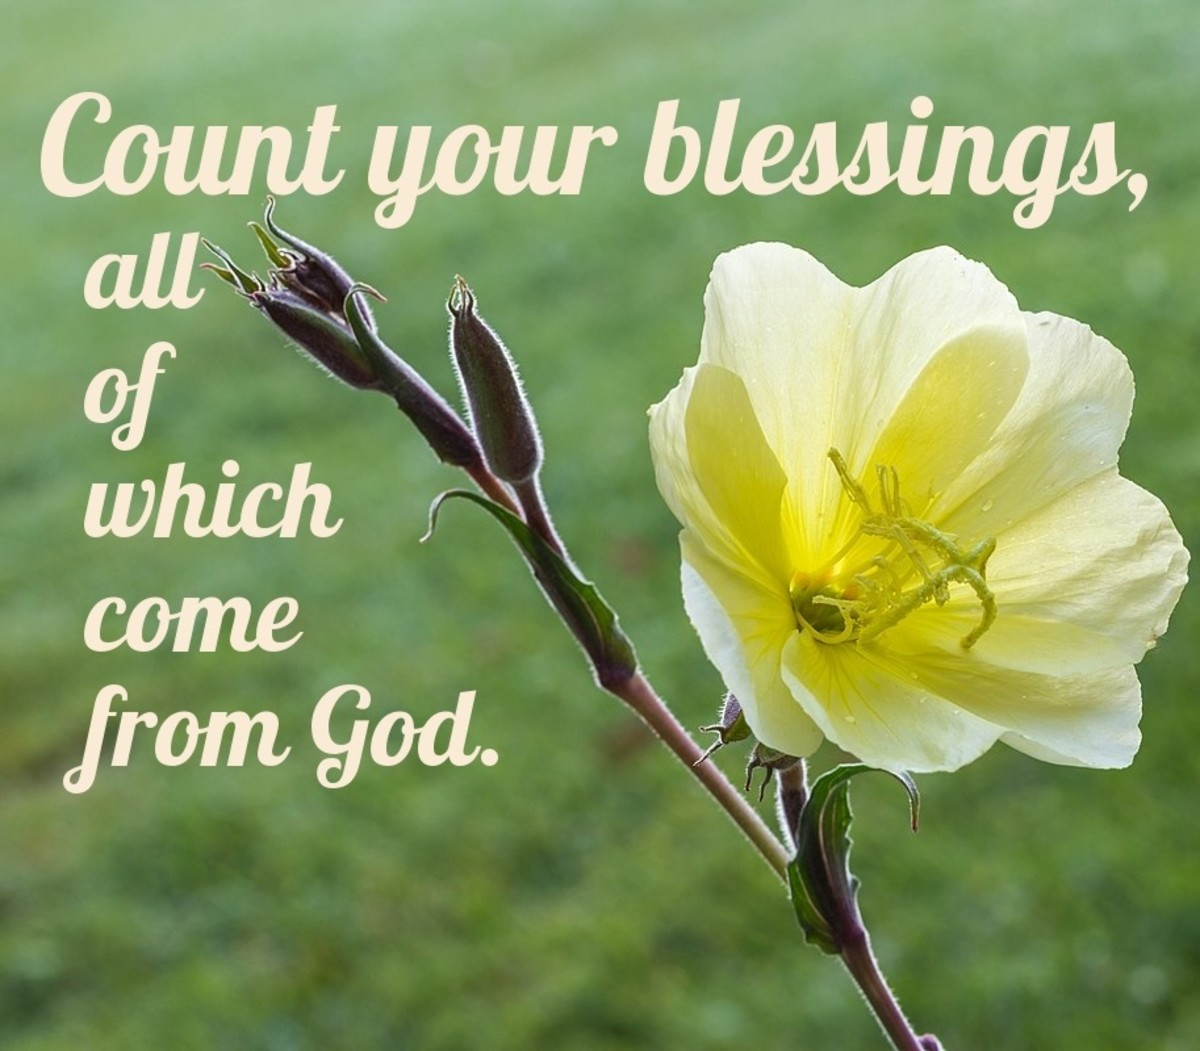 Count your blessings.